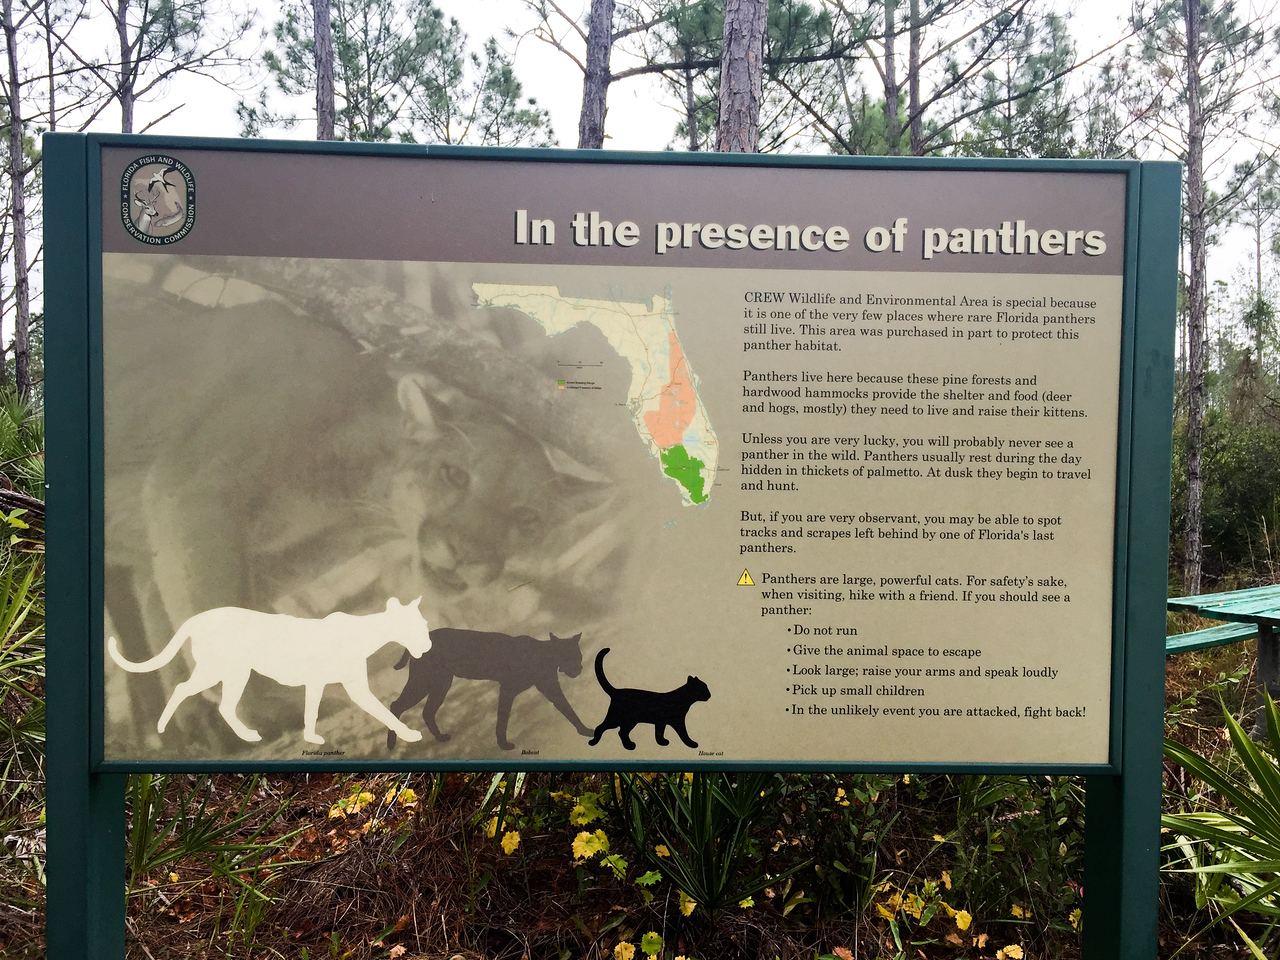 Panther sign at CREW Marsh Trail, FL - January 2018